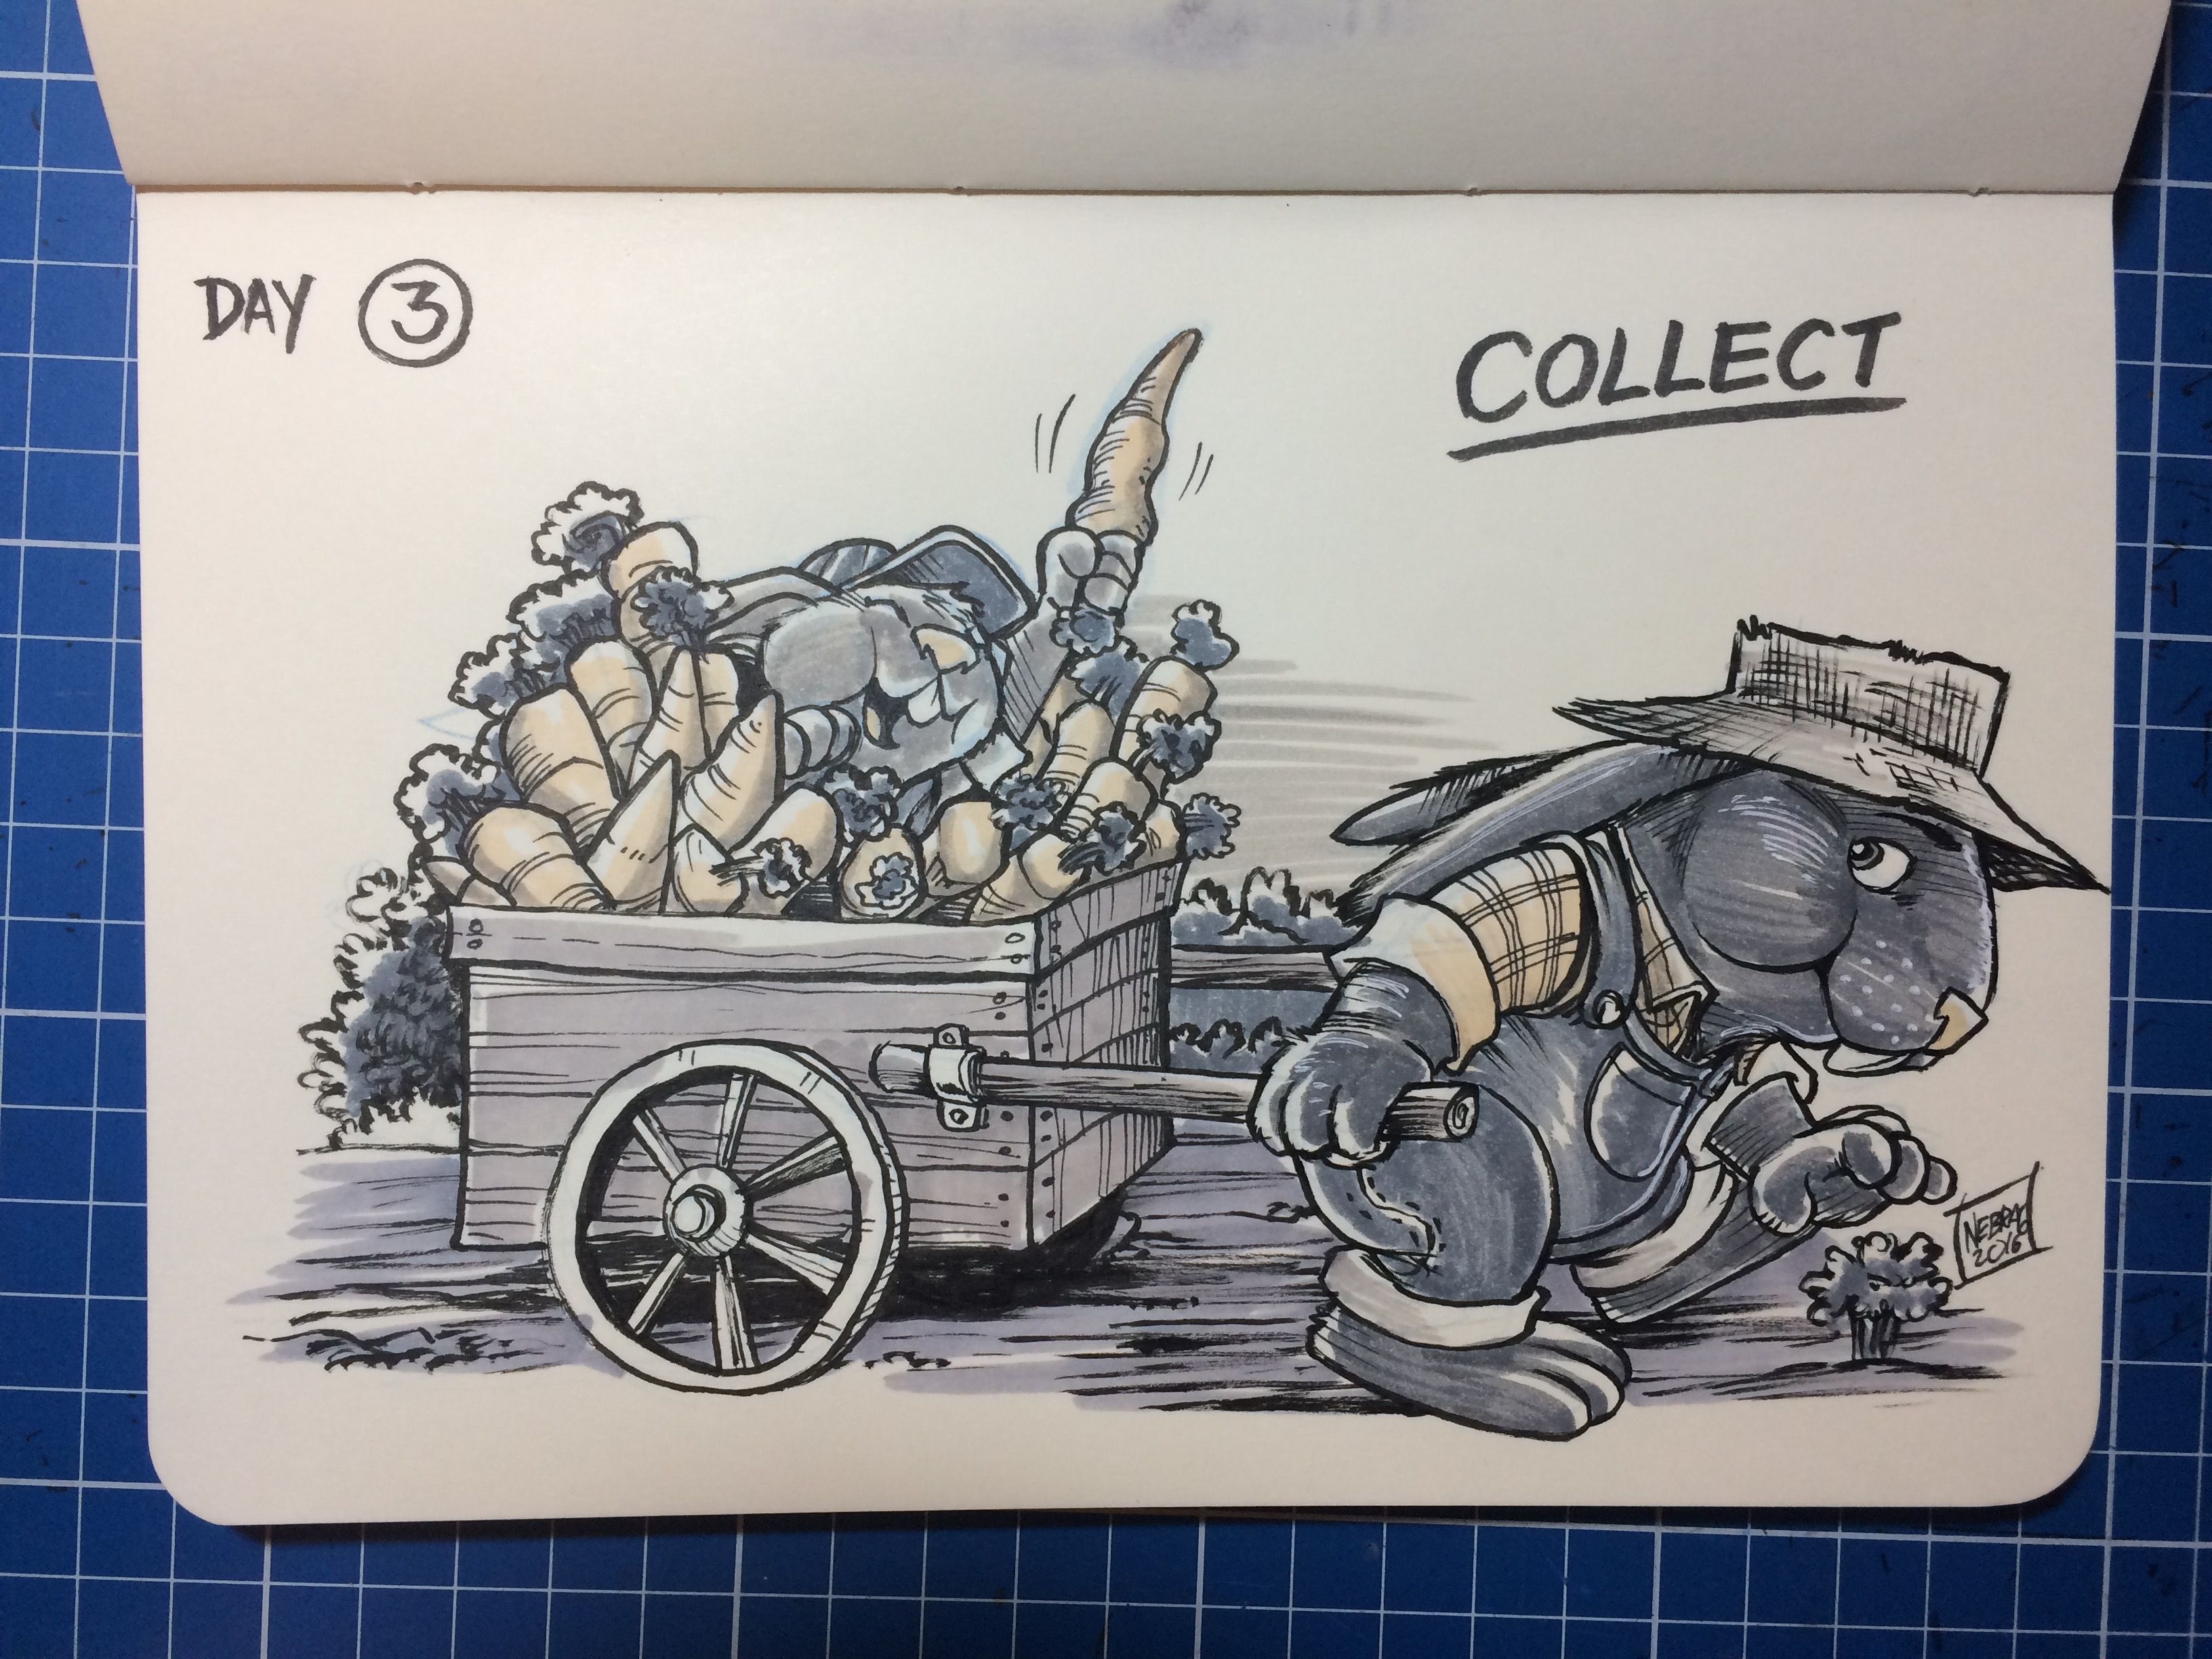 Inktober 2016 day 3 COLLECT